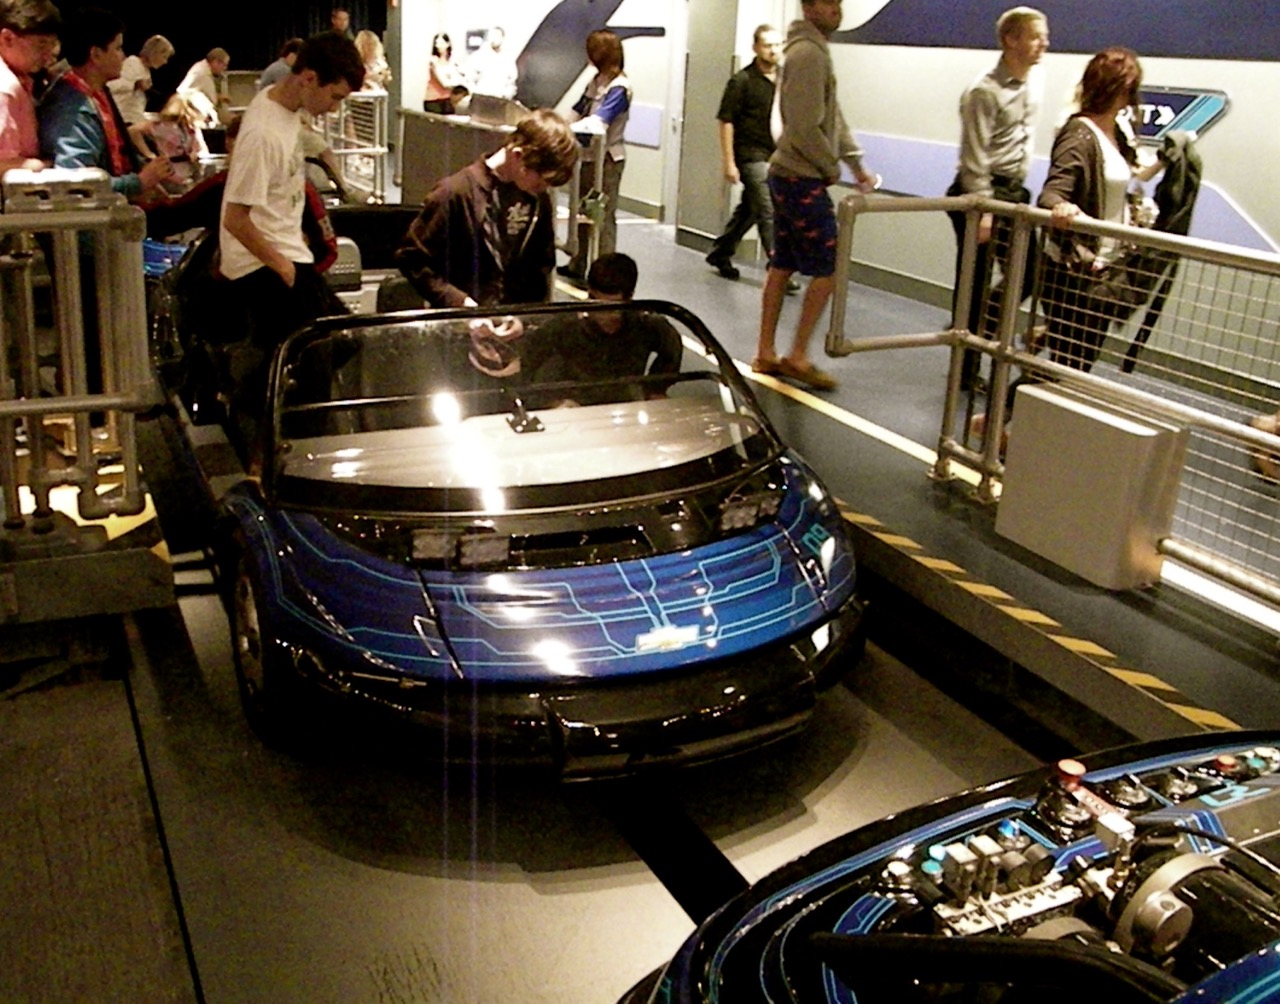 Guests boarding vehicles at Test Track, a complicated attraction where computers manage the acceleration and braking for the passenger. Photo by J. Jeff Kober